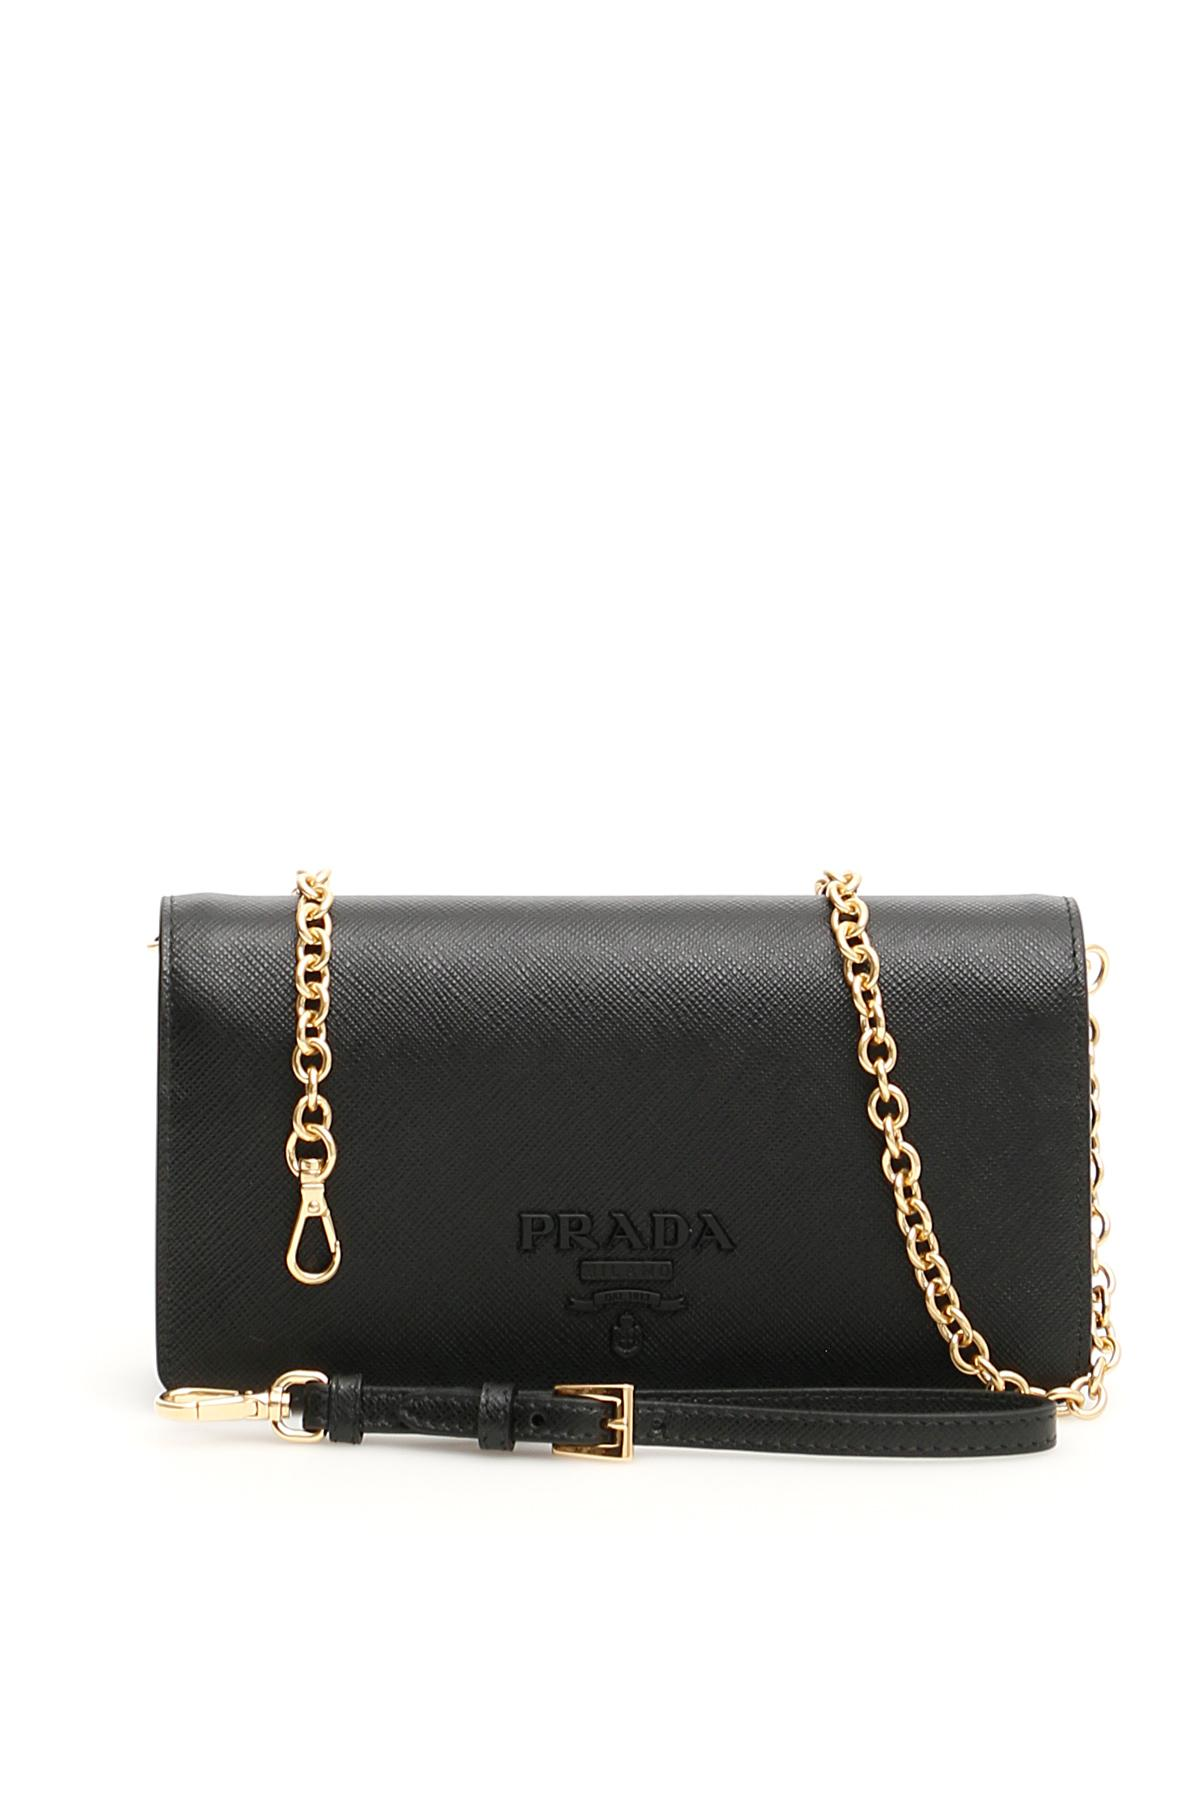 e76167f2d8 Prada Bags for Women Philippines - Prada Womens Bags for sale ...